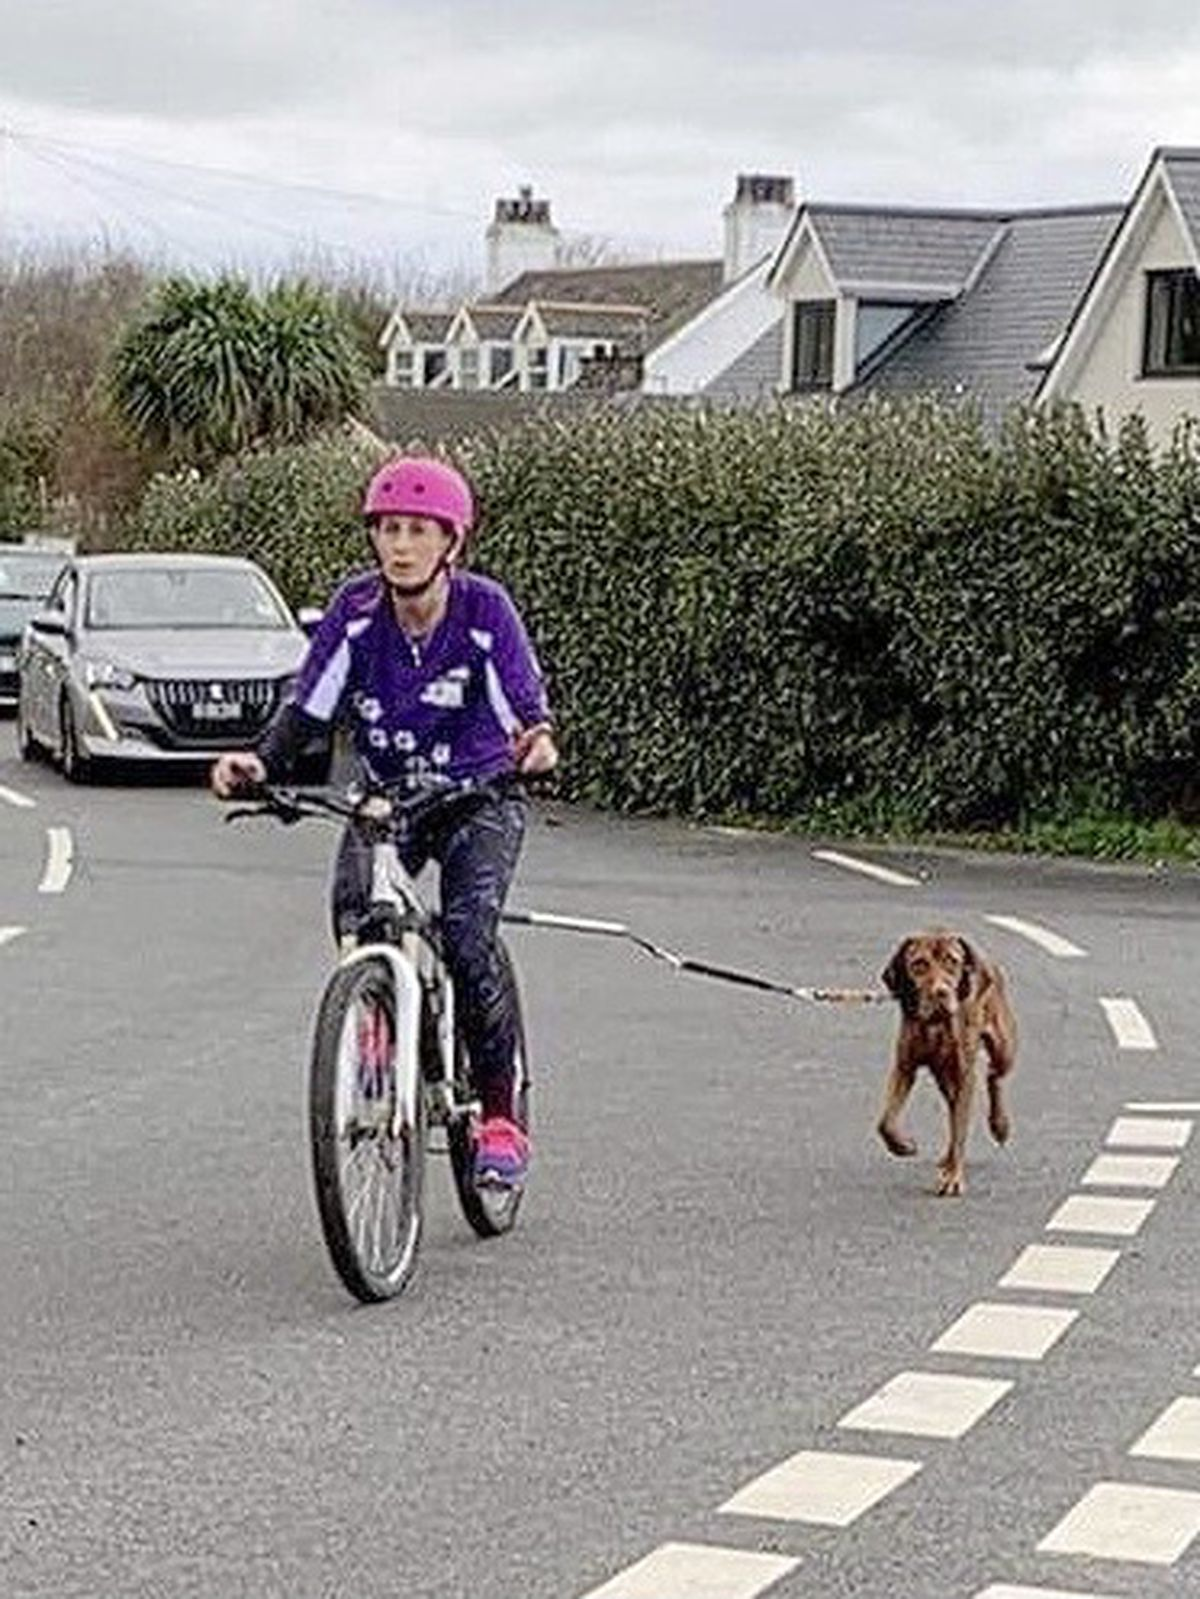 12 teams took just over six hours in relay to complete a lap of the island in the first canicross event. Pictured is Nicola Brouard who cycled the leg from Rousse to Chouet with her Alaskan malamute, Sammy. (29002988)